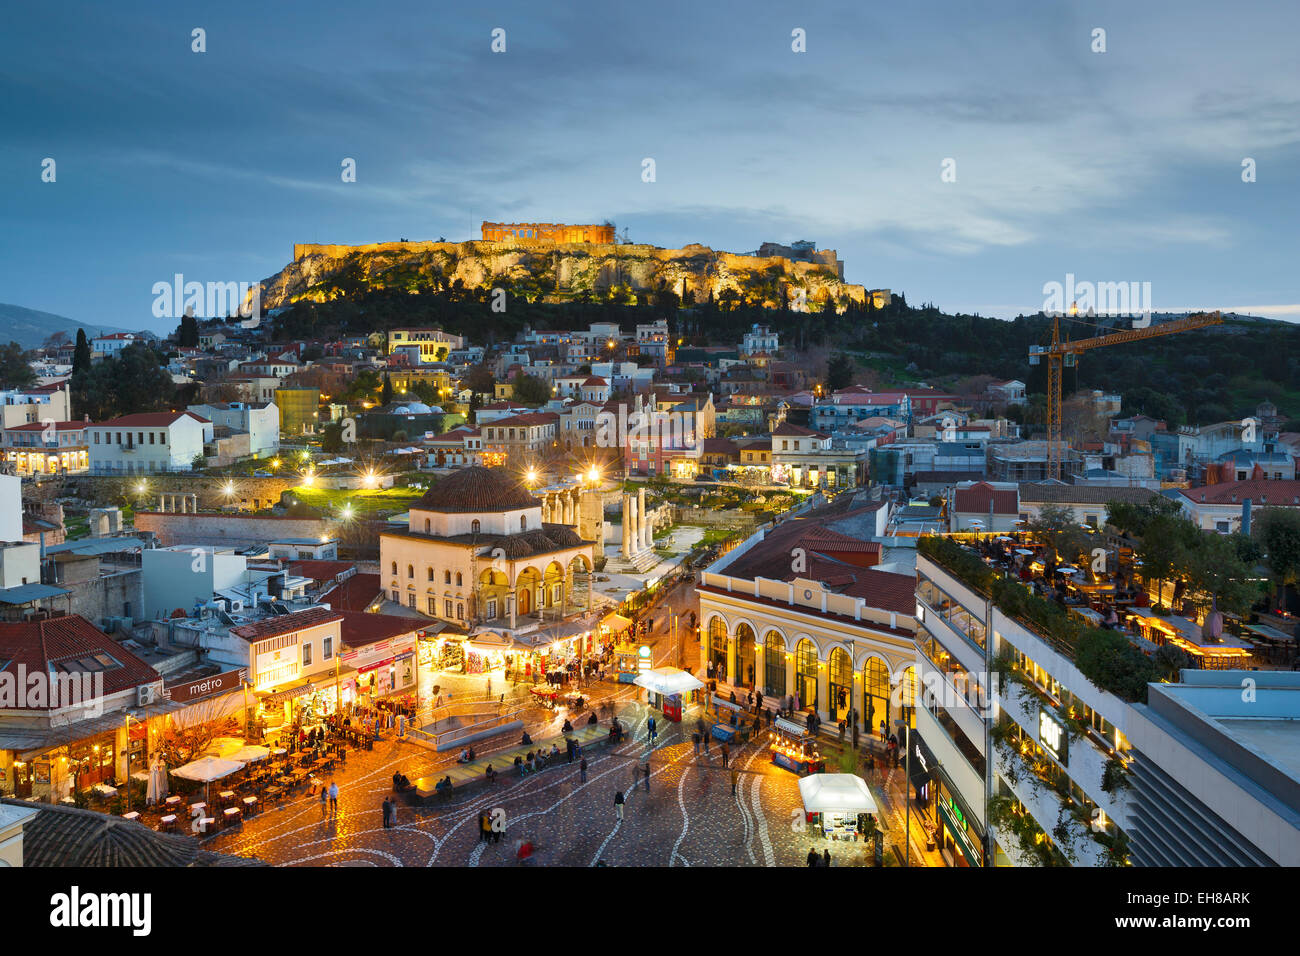 Monastiraki square and Plaka, Athens, Greece - Stock Image